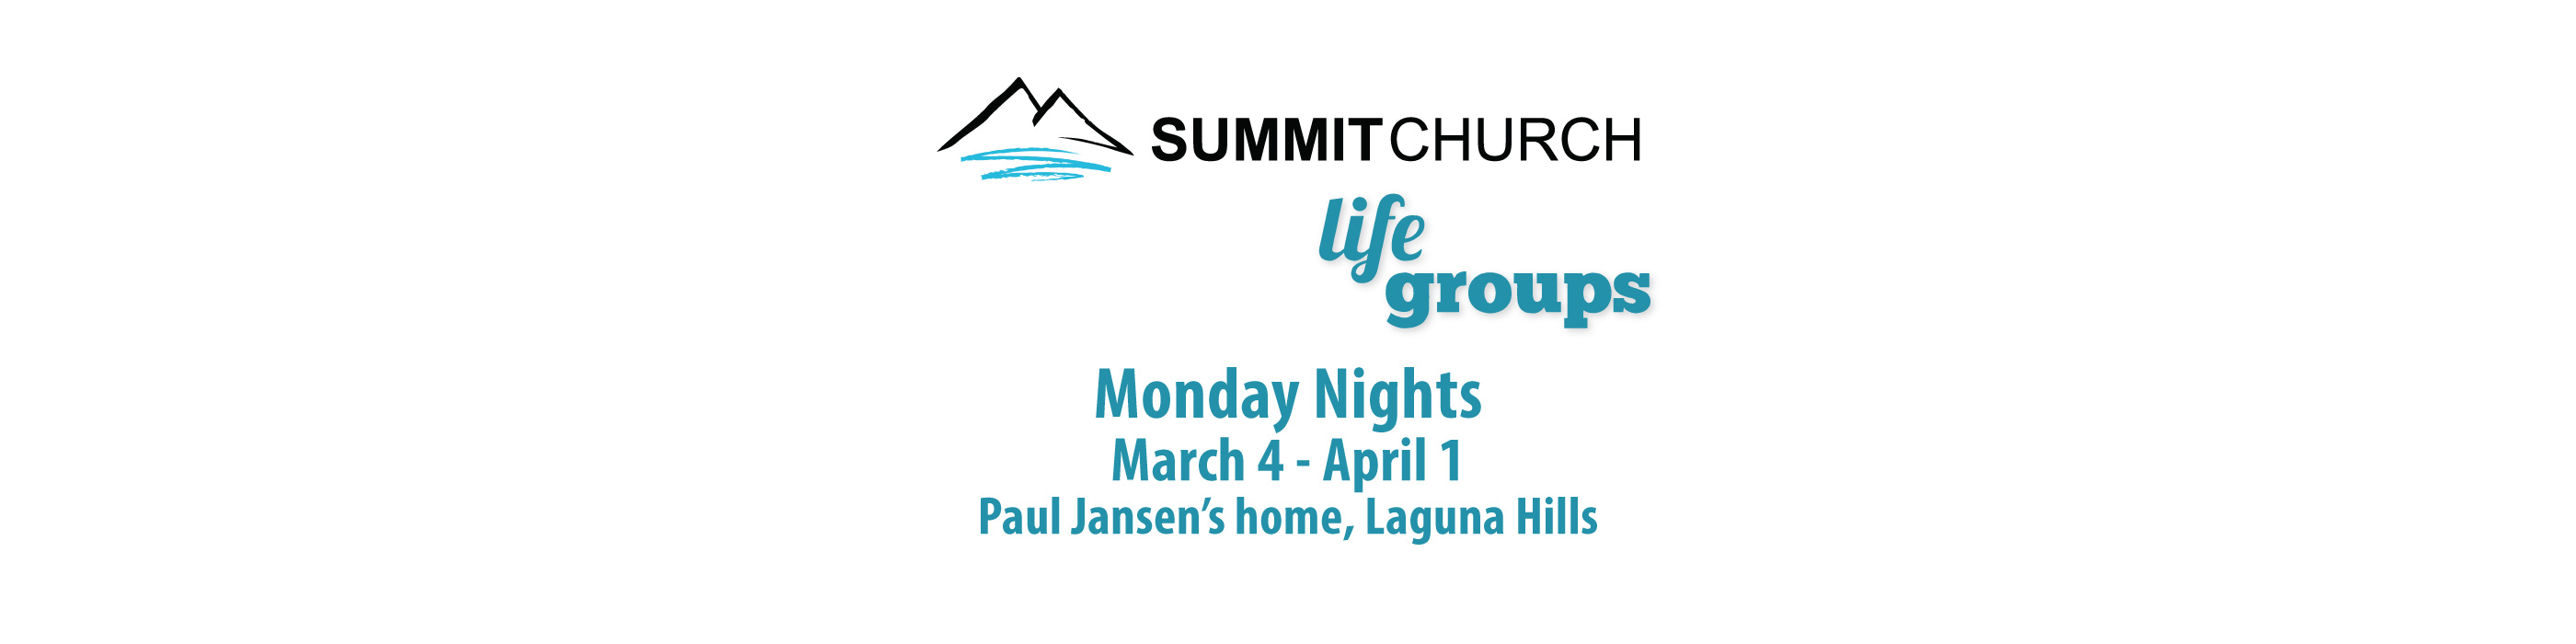 Summit-Church-Bulletin-Graphic-Life-Groups-Q1-2019-WEB-2800x700